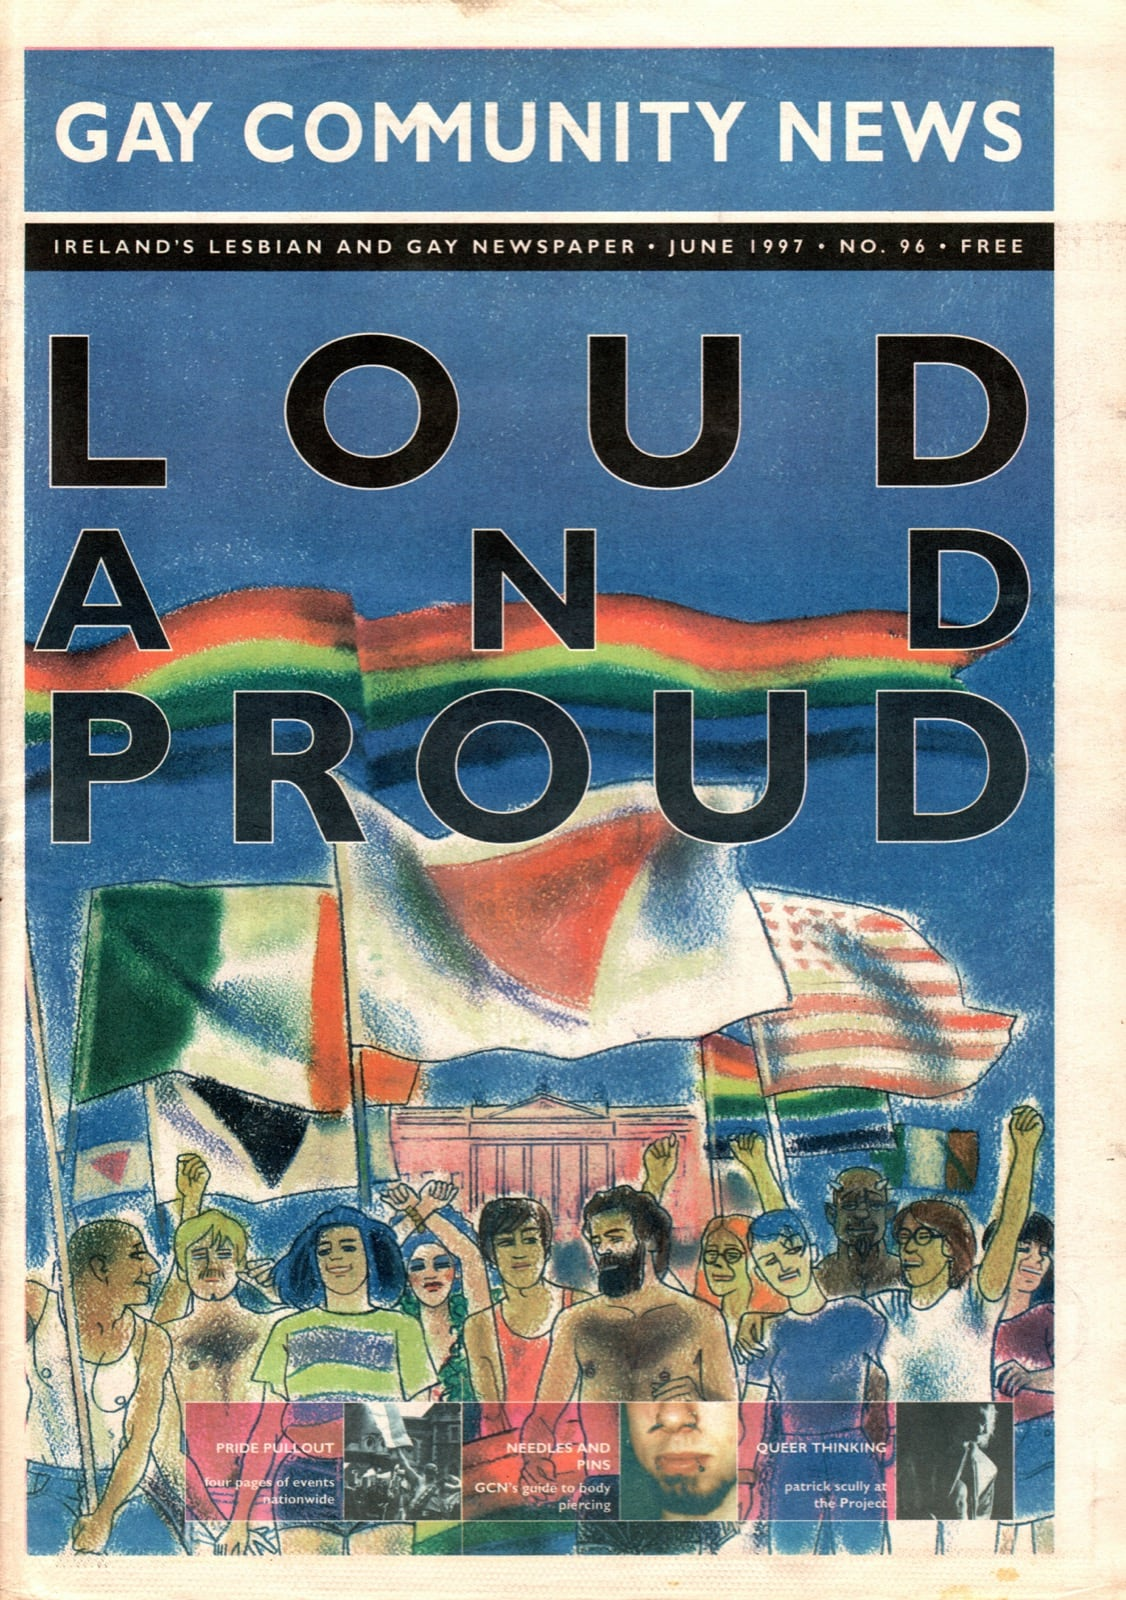 Some of GCN's covers from 1992 with an illustration of LGBT Irish people on the cover.